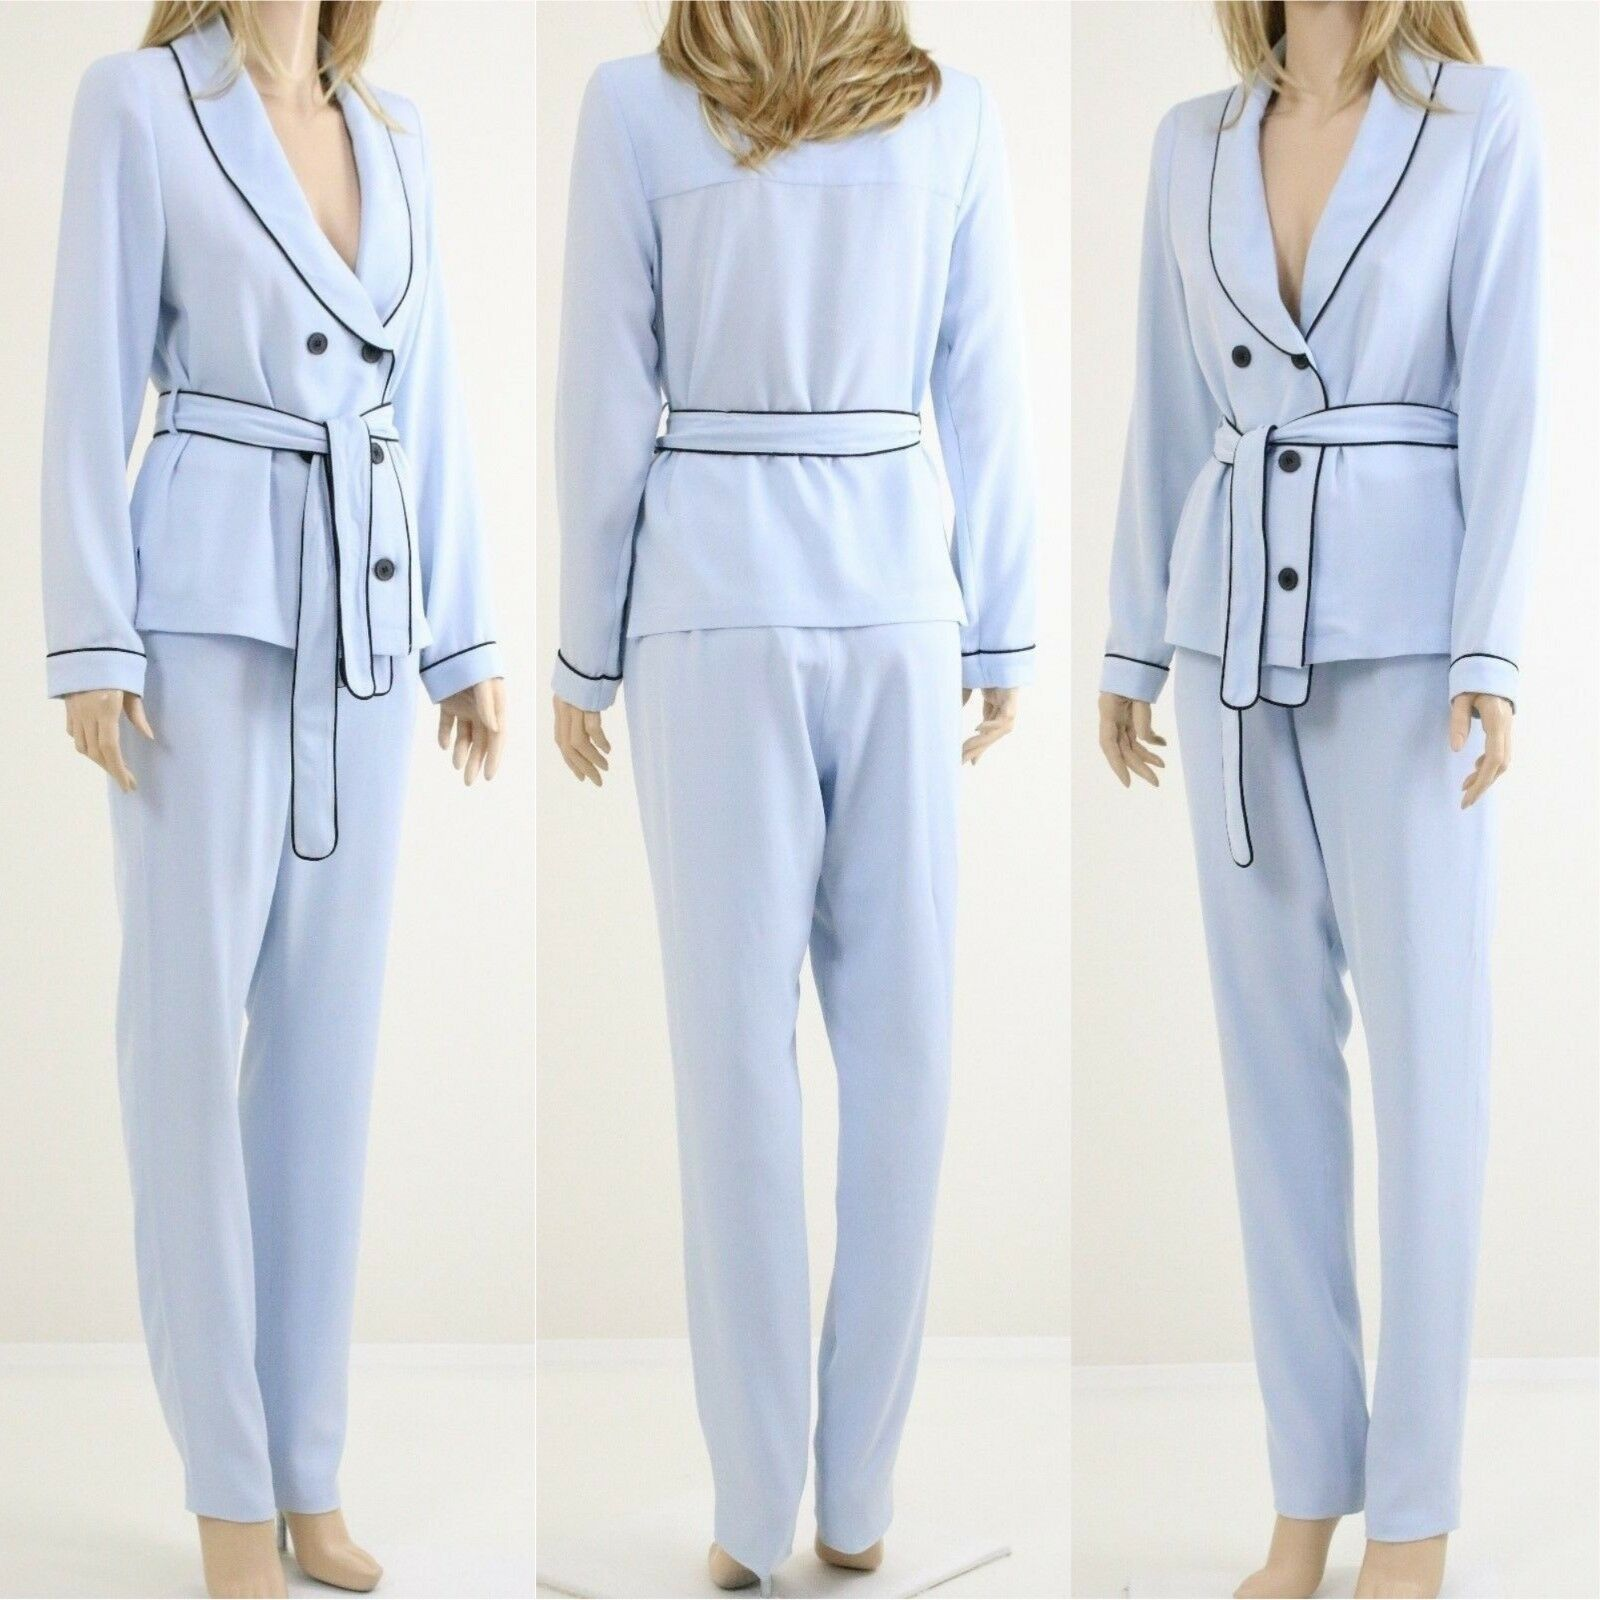 Lavish Alice Blau Pyjama Stil Double Breasted Tie Belt Hemd Slim W Trousers